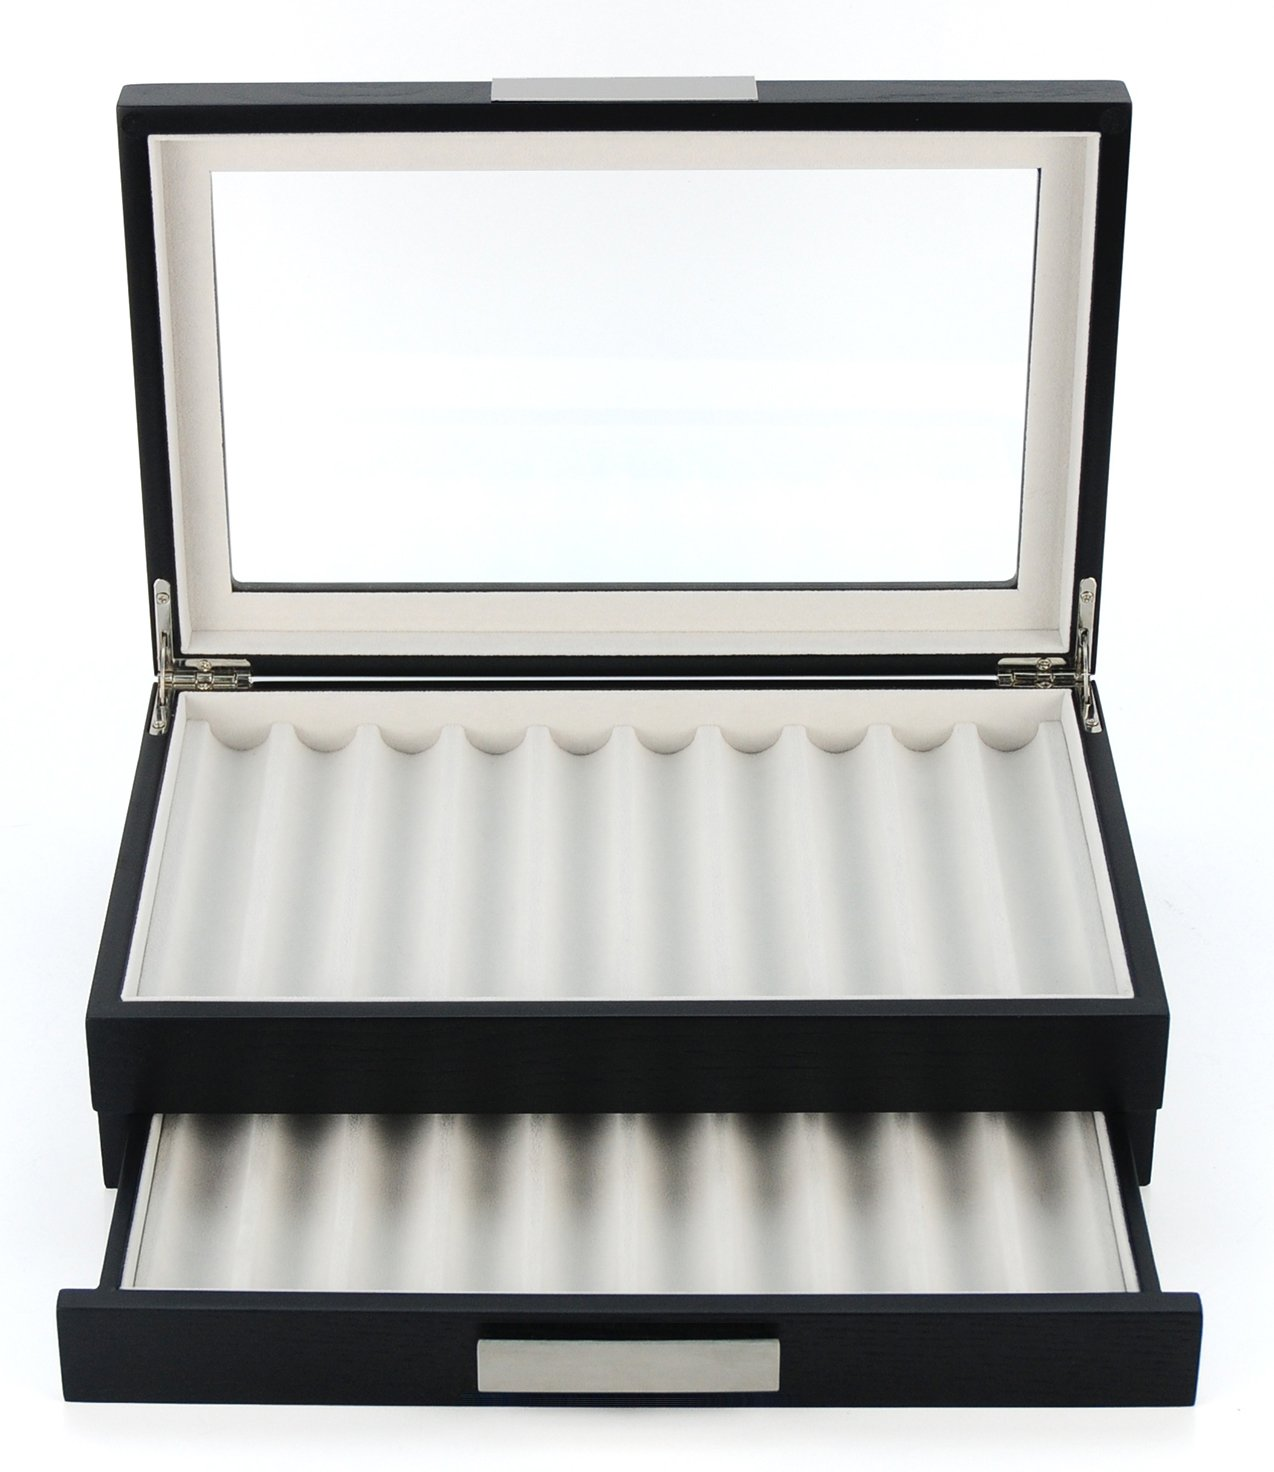 20 Piece Black Ebony Wood Pen Display Case Storage and Fountain Pen Collector Organizer Box with Glass Window Two Level Display Case with Drawer